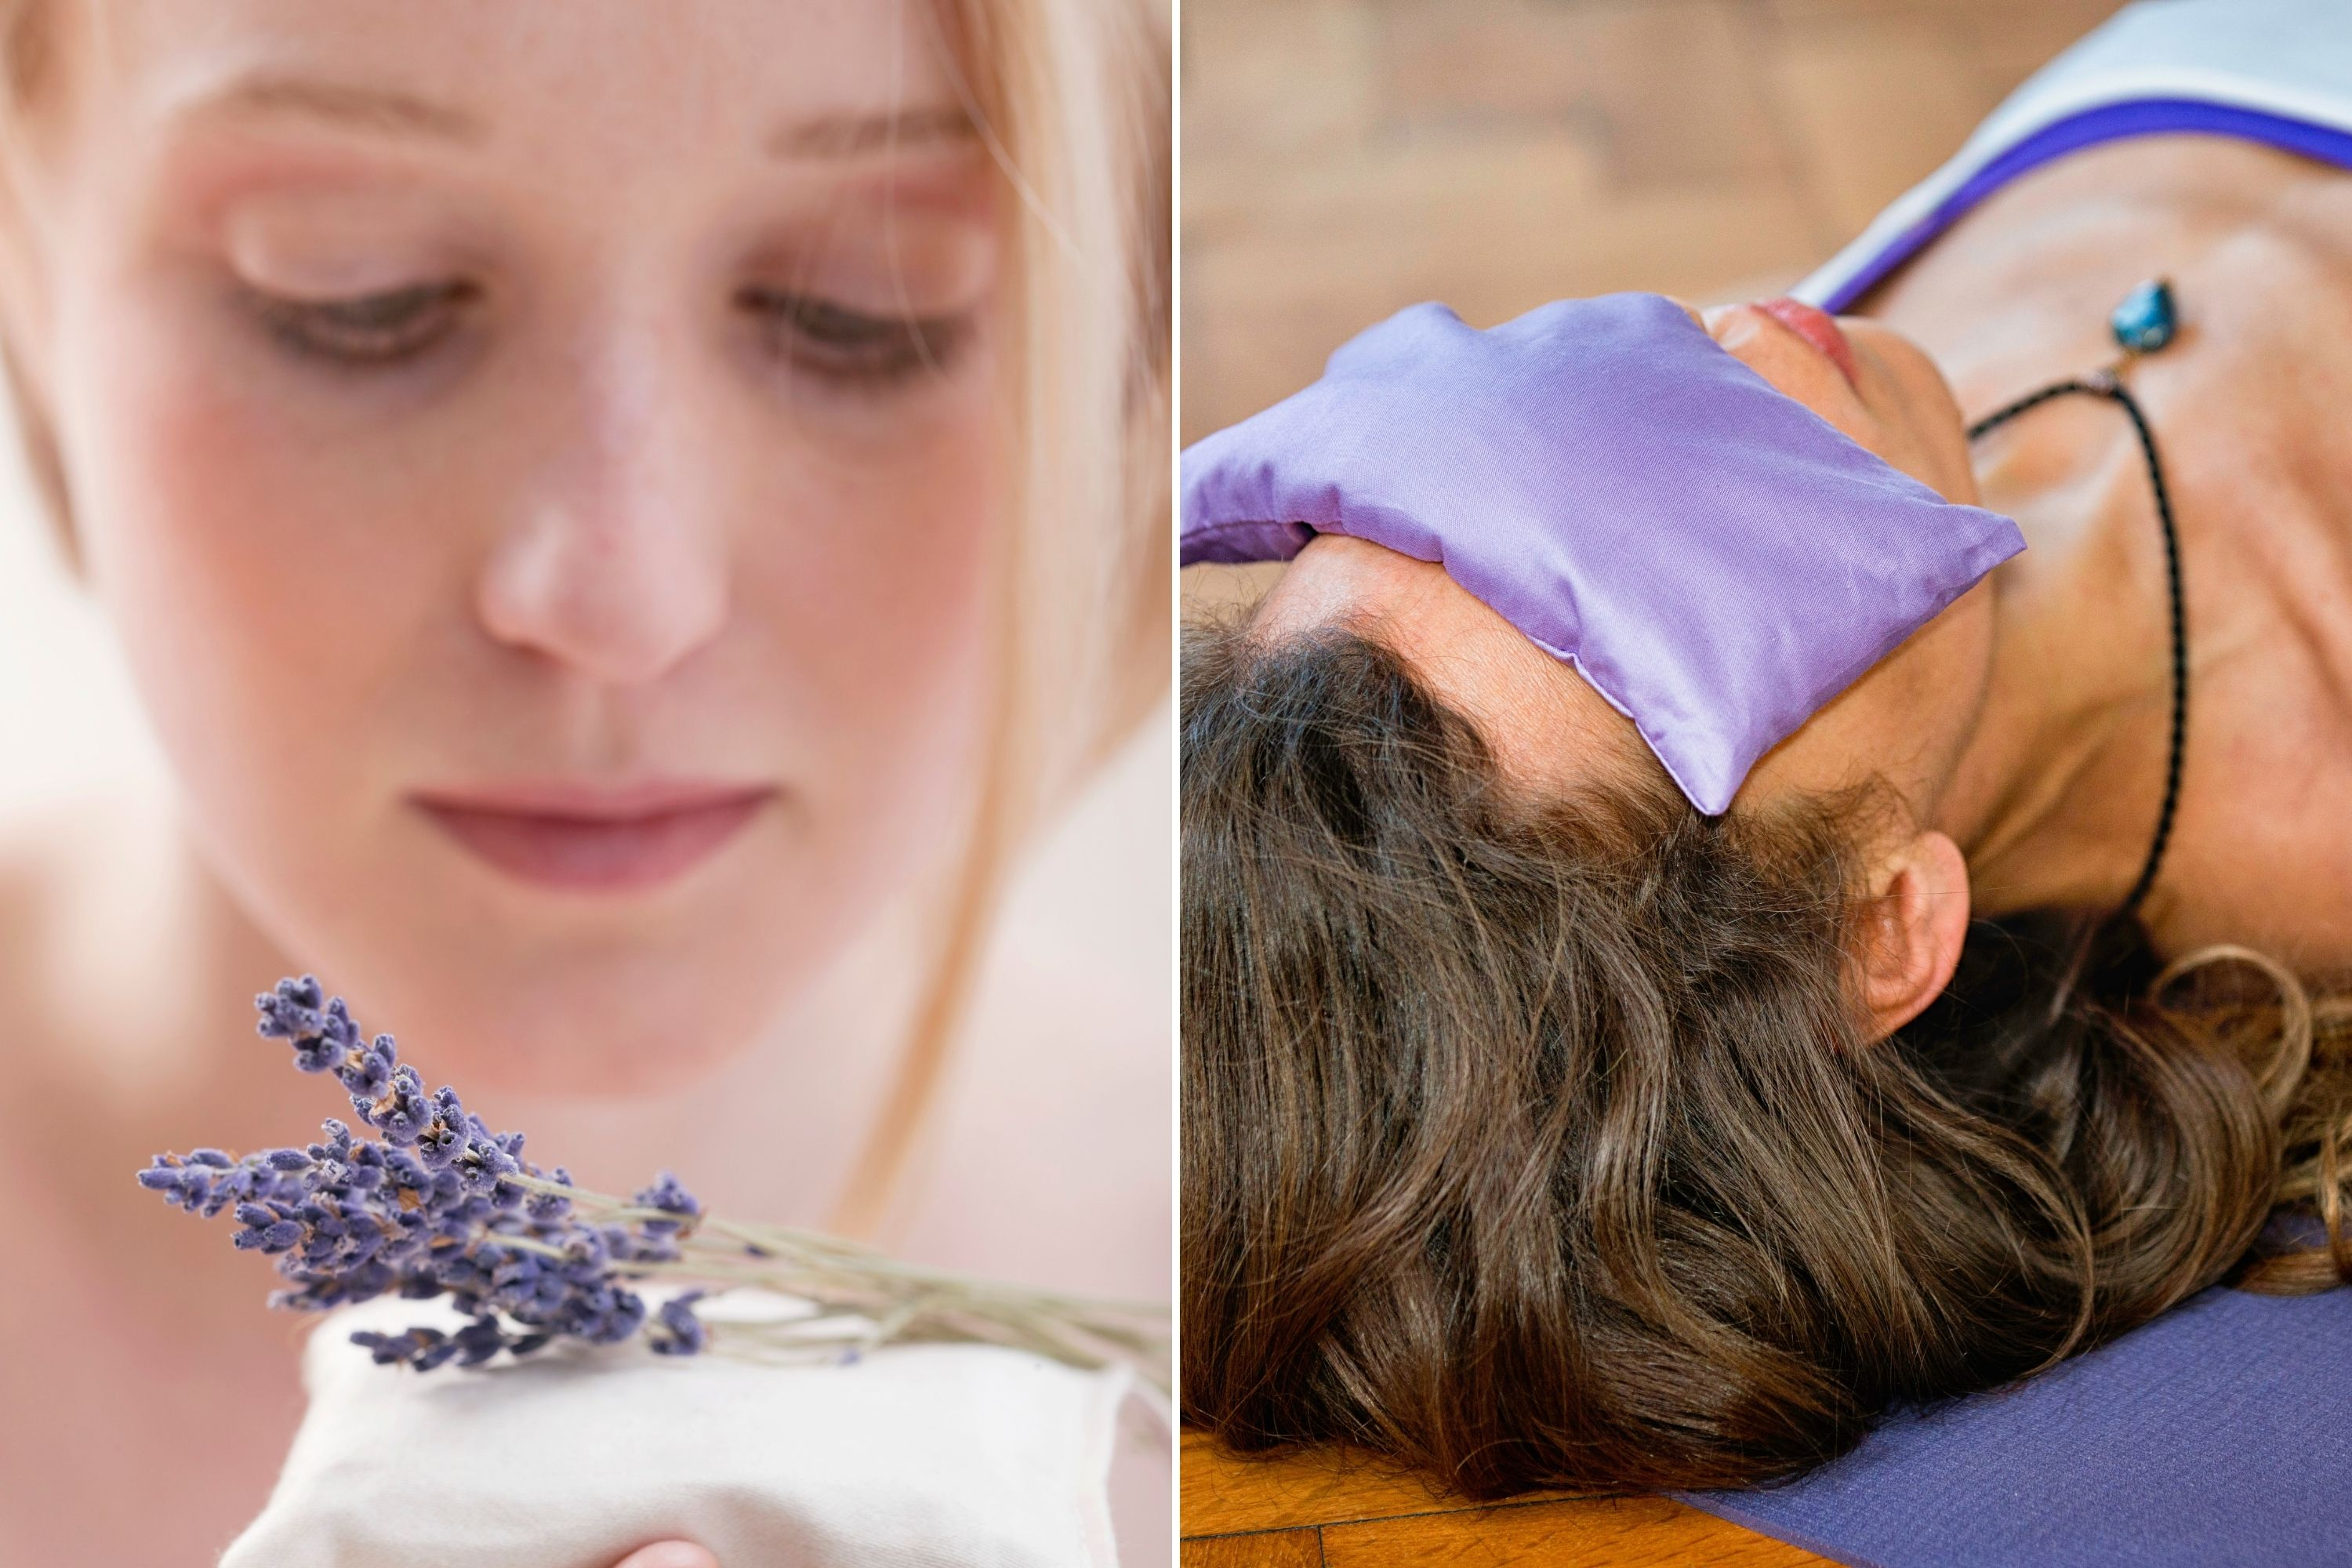 Lavender Pillows May Aid in Improving Sleep